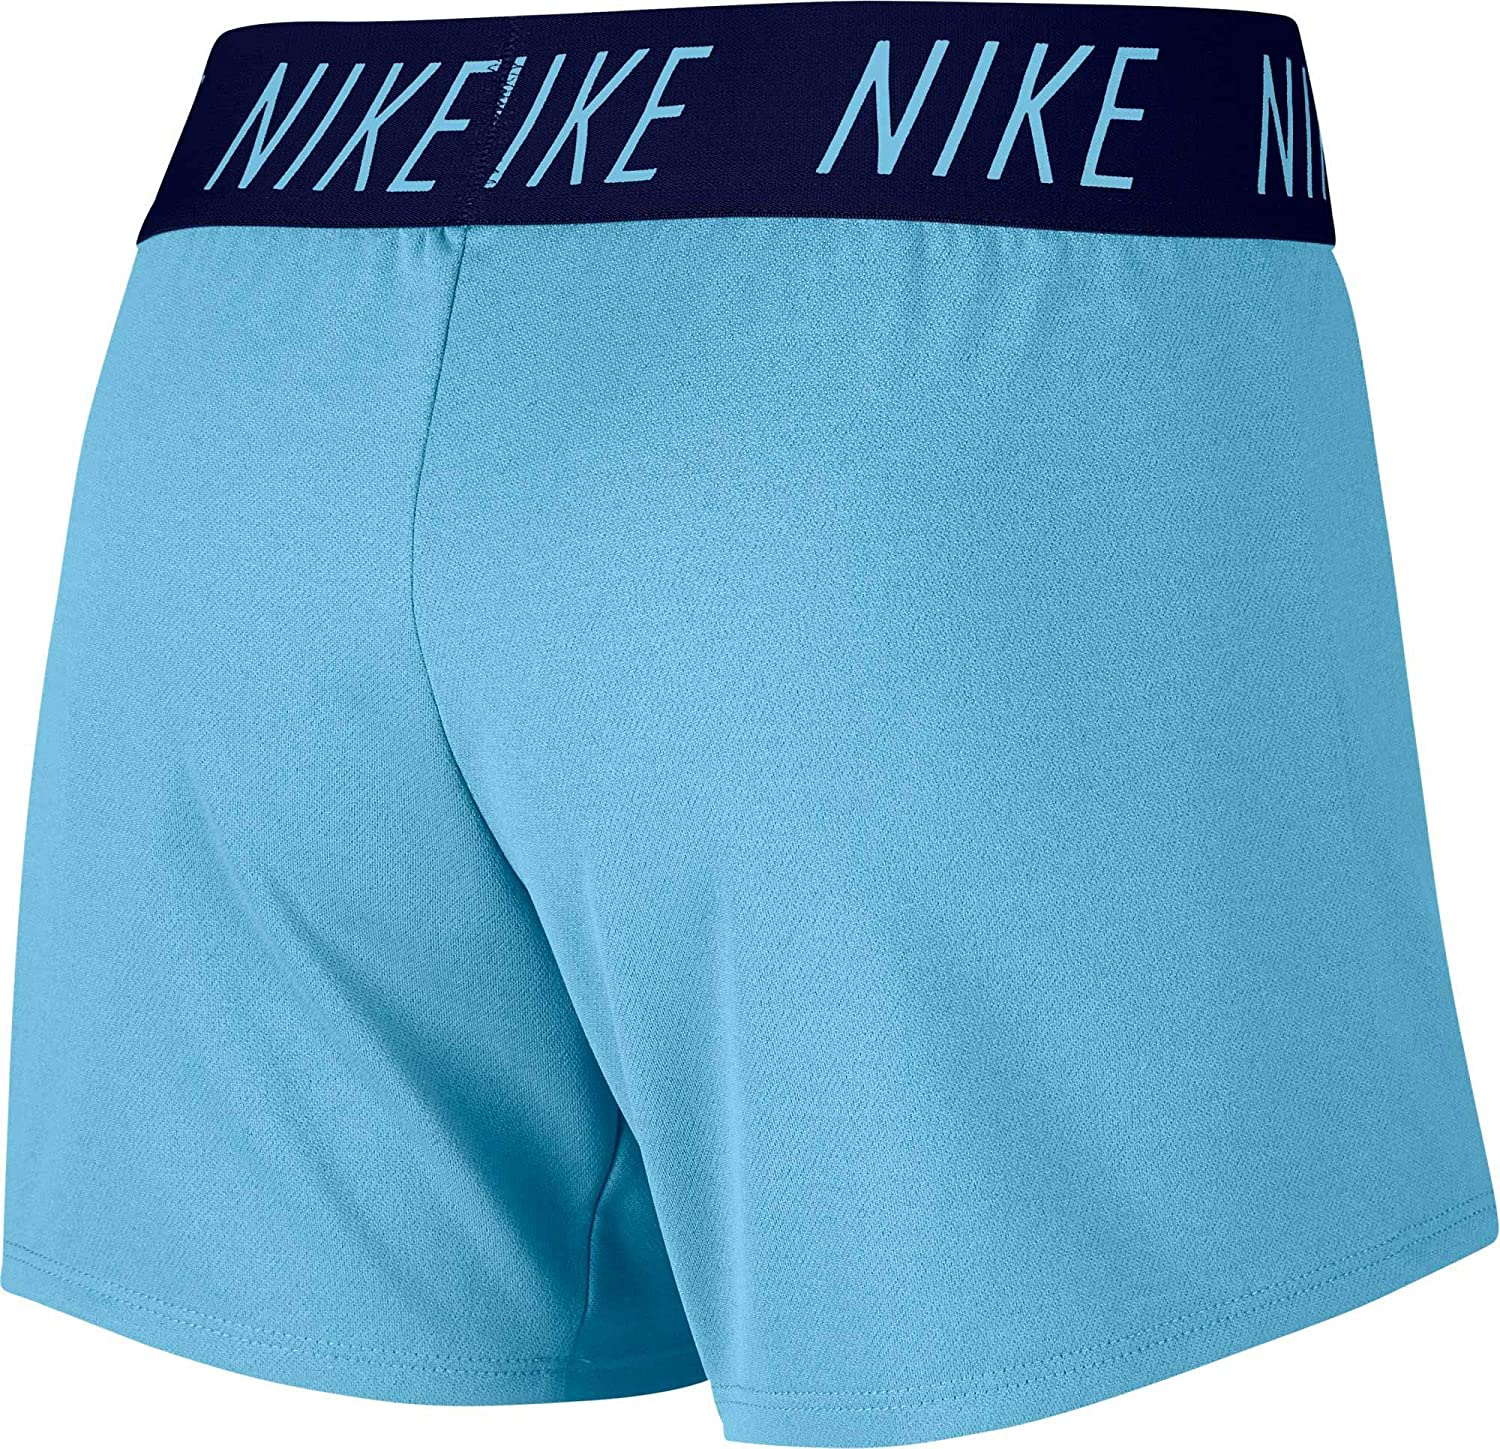 0eed29d5 Amazon.com : Nike Girls Dry Trophy Graphic Shorts (L, Blue) : Sports &  Outdoors